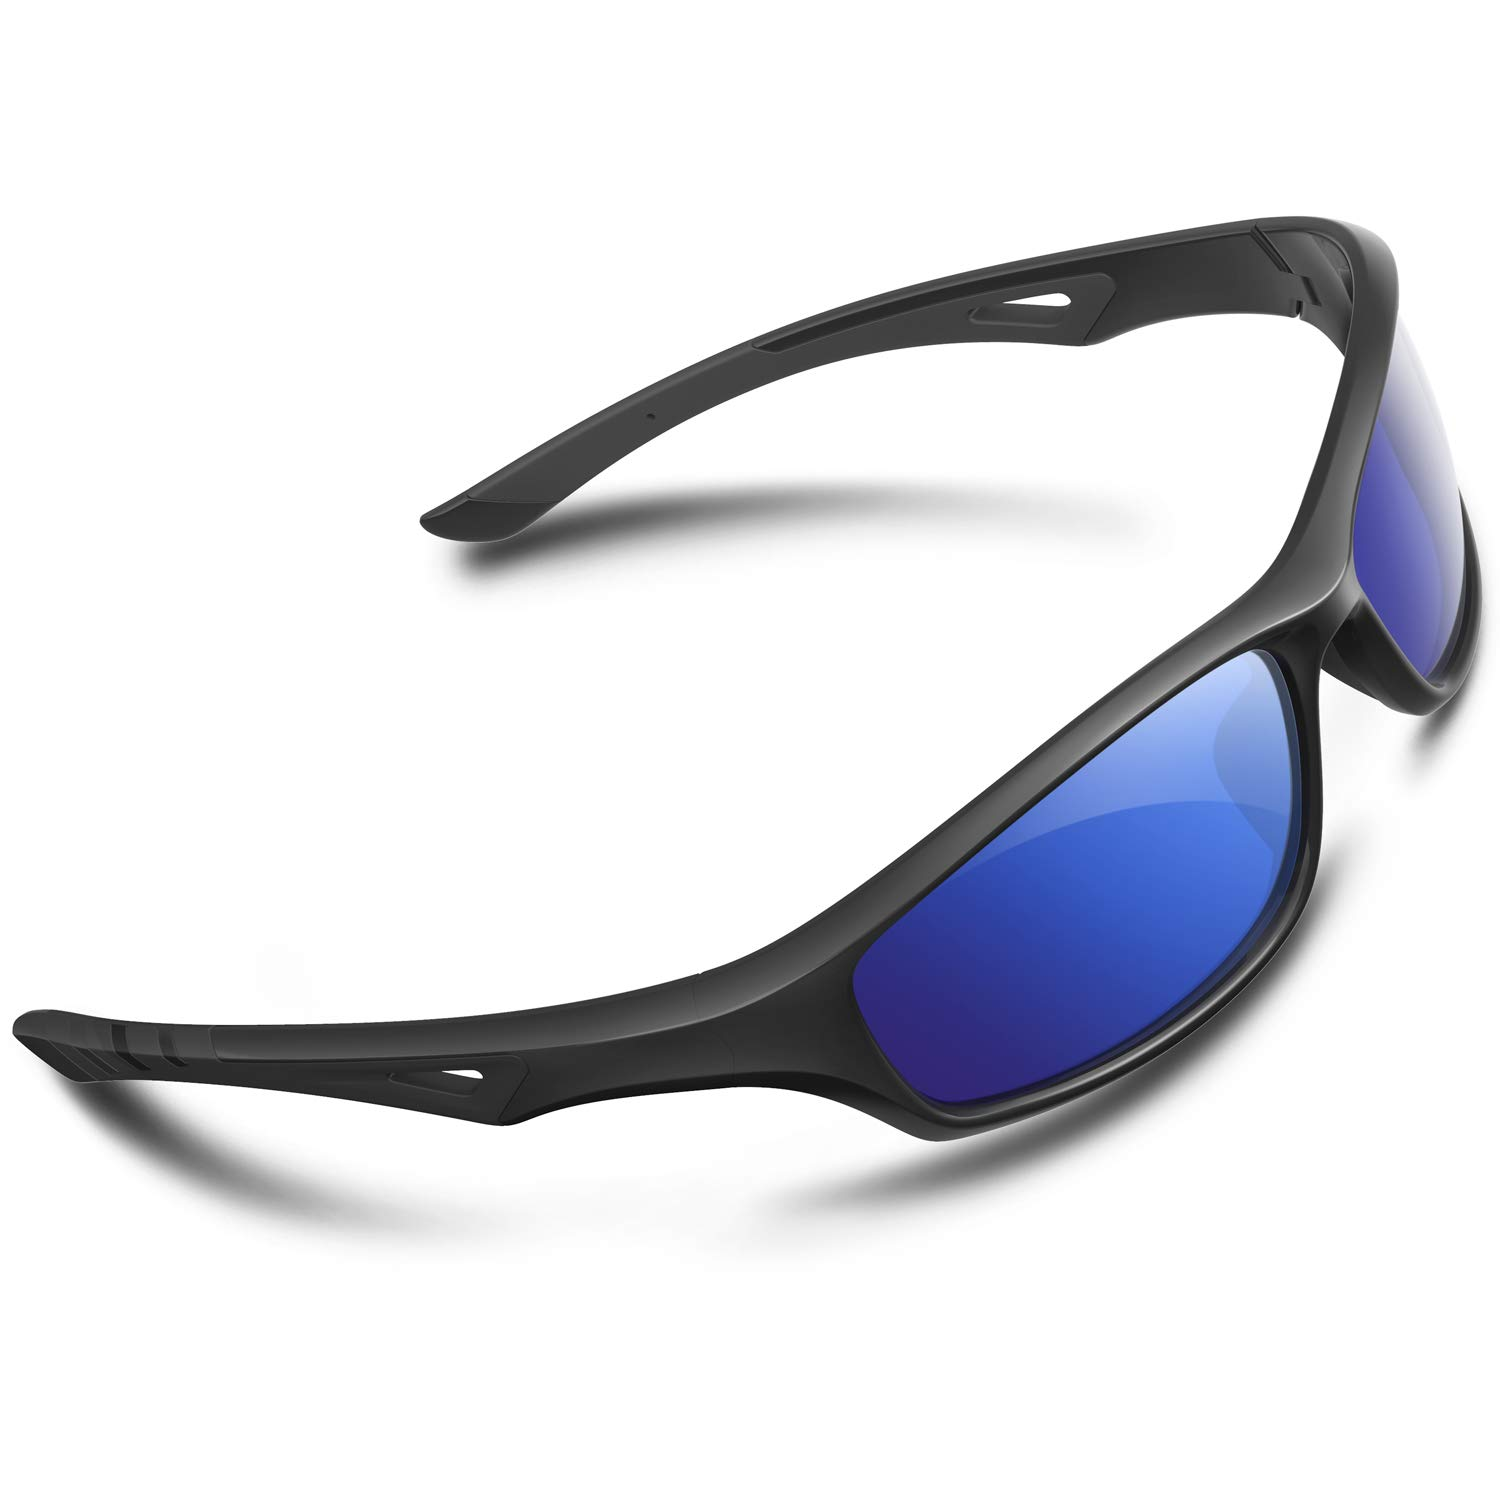 RIVBOS Polarized Sports Sunglasses Driving Glasses Shades for Men TR90 Unbreakable Frame for Cycling Baseball RB831 (RB842-Black,Blue Iced Lens)